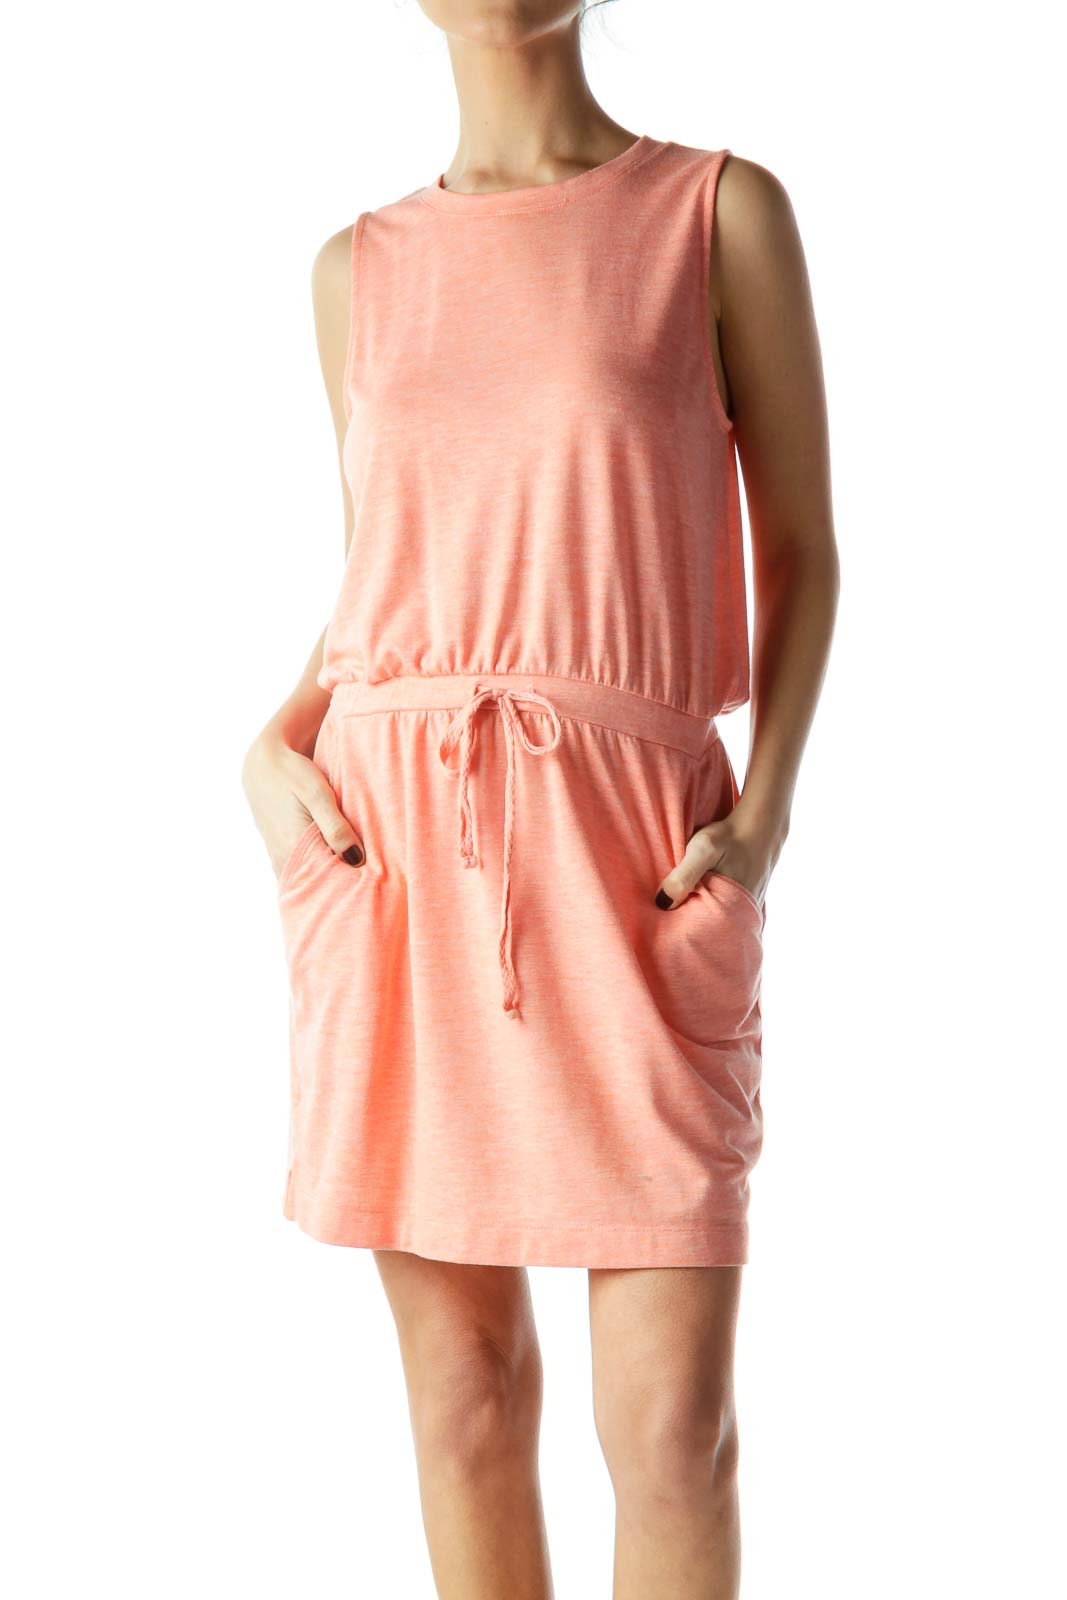 Peach Color Sleeveless Jersey Dress